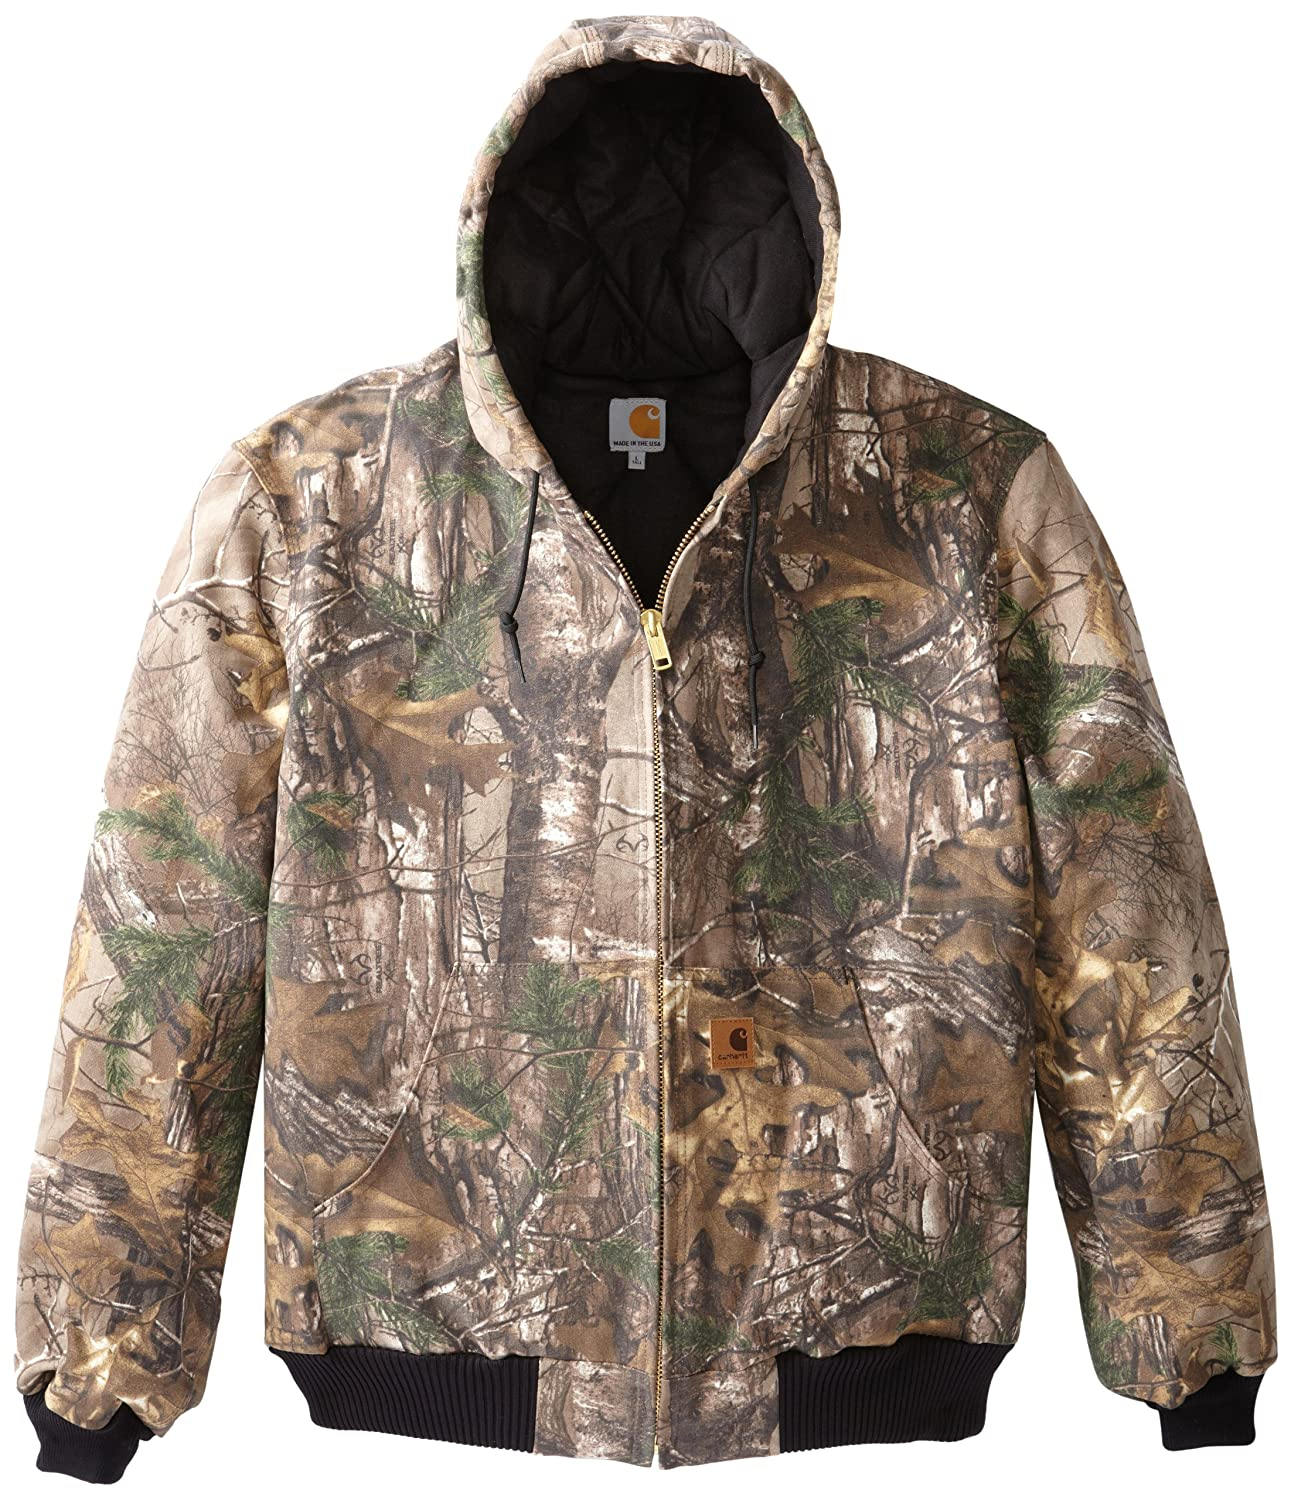 CarharttメンズBig & Tall Quilted Flannel Lined Camo Active Jacket リアルツリーエクストラ(realtree Xtra) L Lリアルツリーエクストラ(realtree Xtra) B00C6707R6